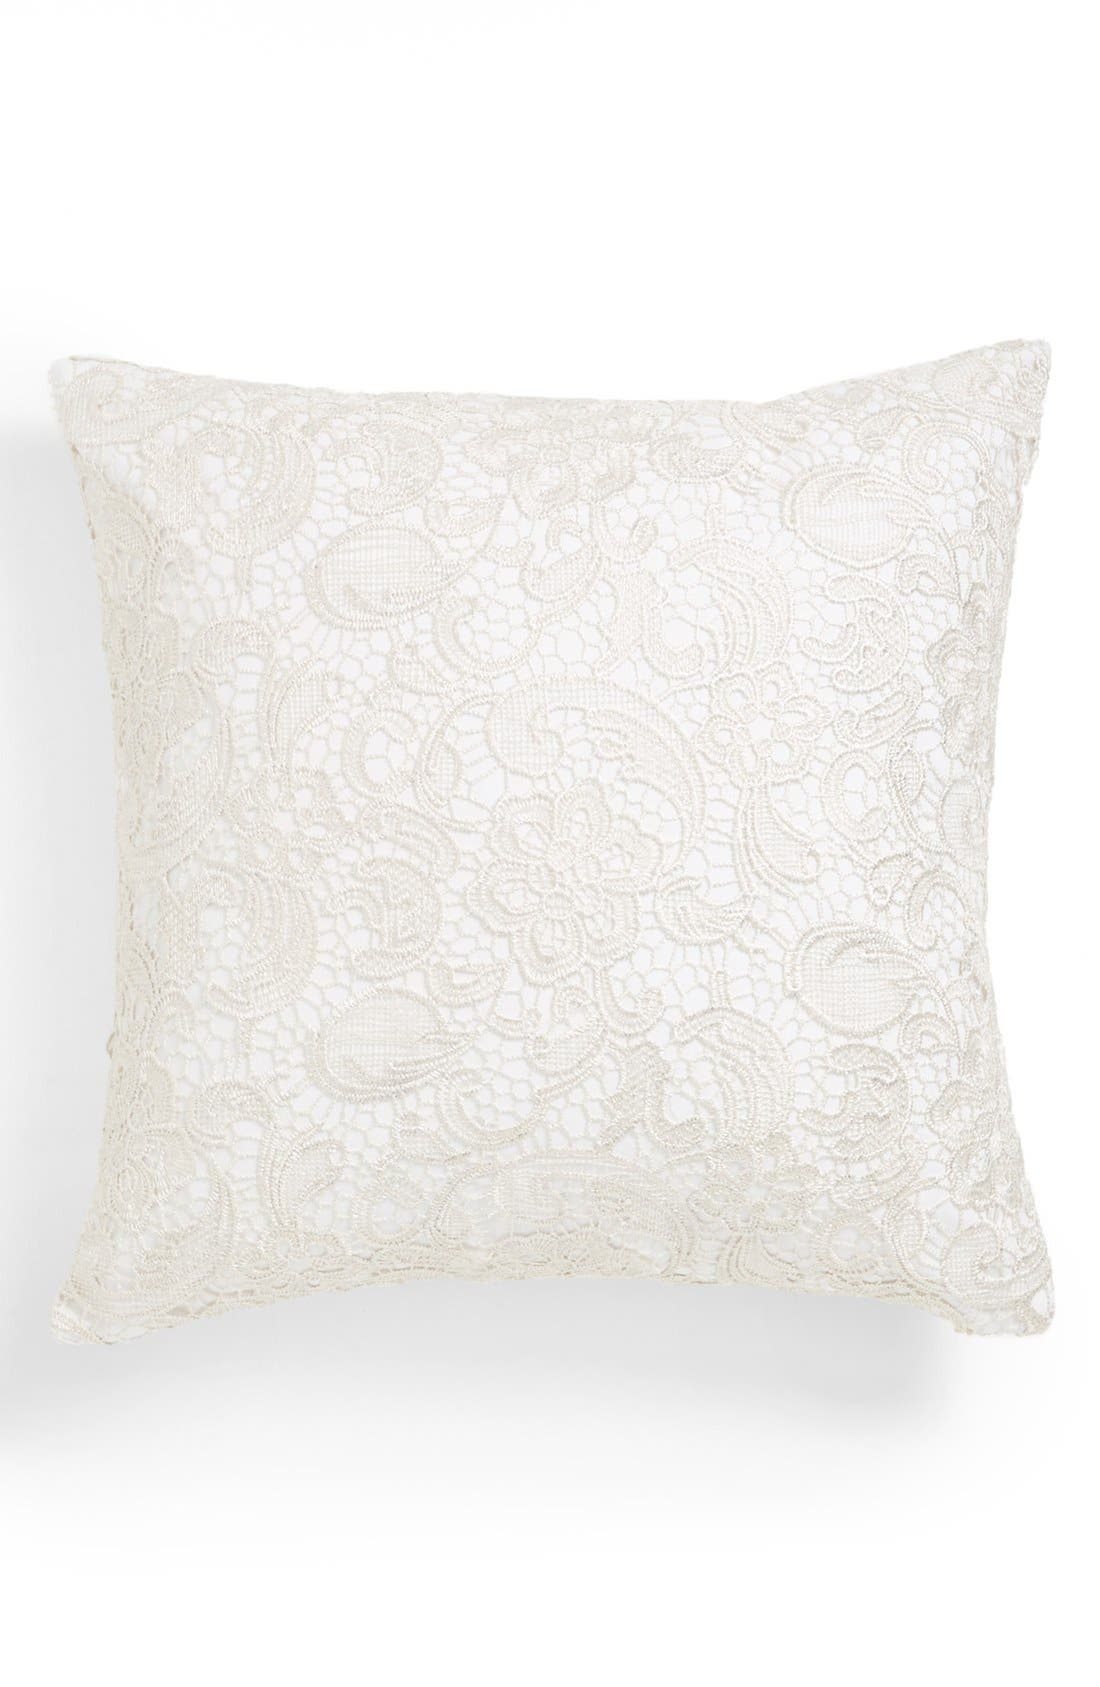 Alternate Image 1 Selected - Nordstrom at Home 'Glistening Lace' Pillow